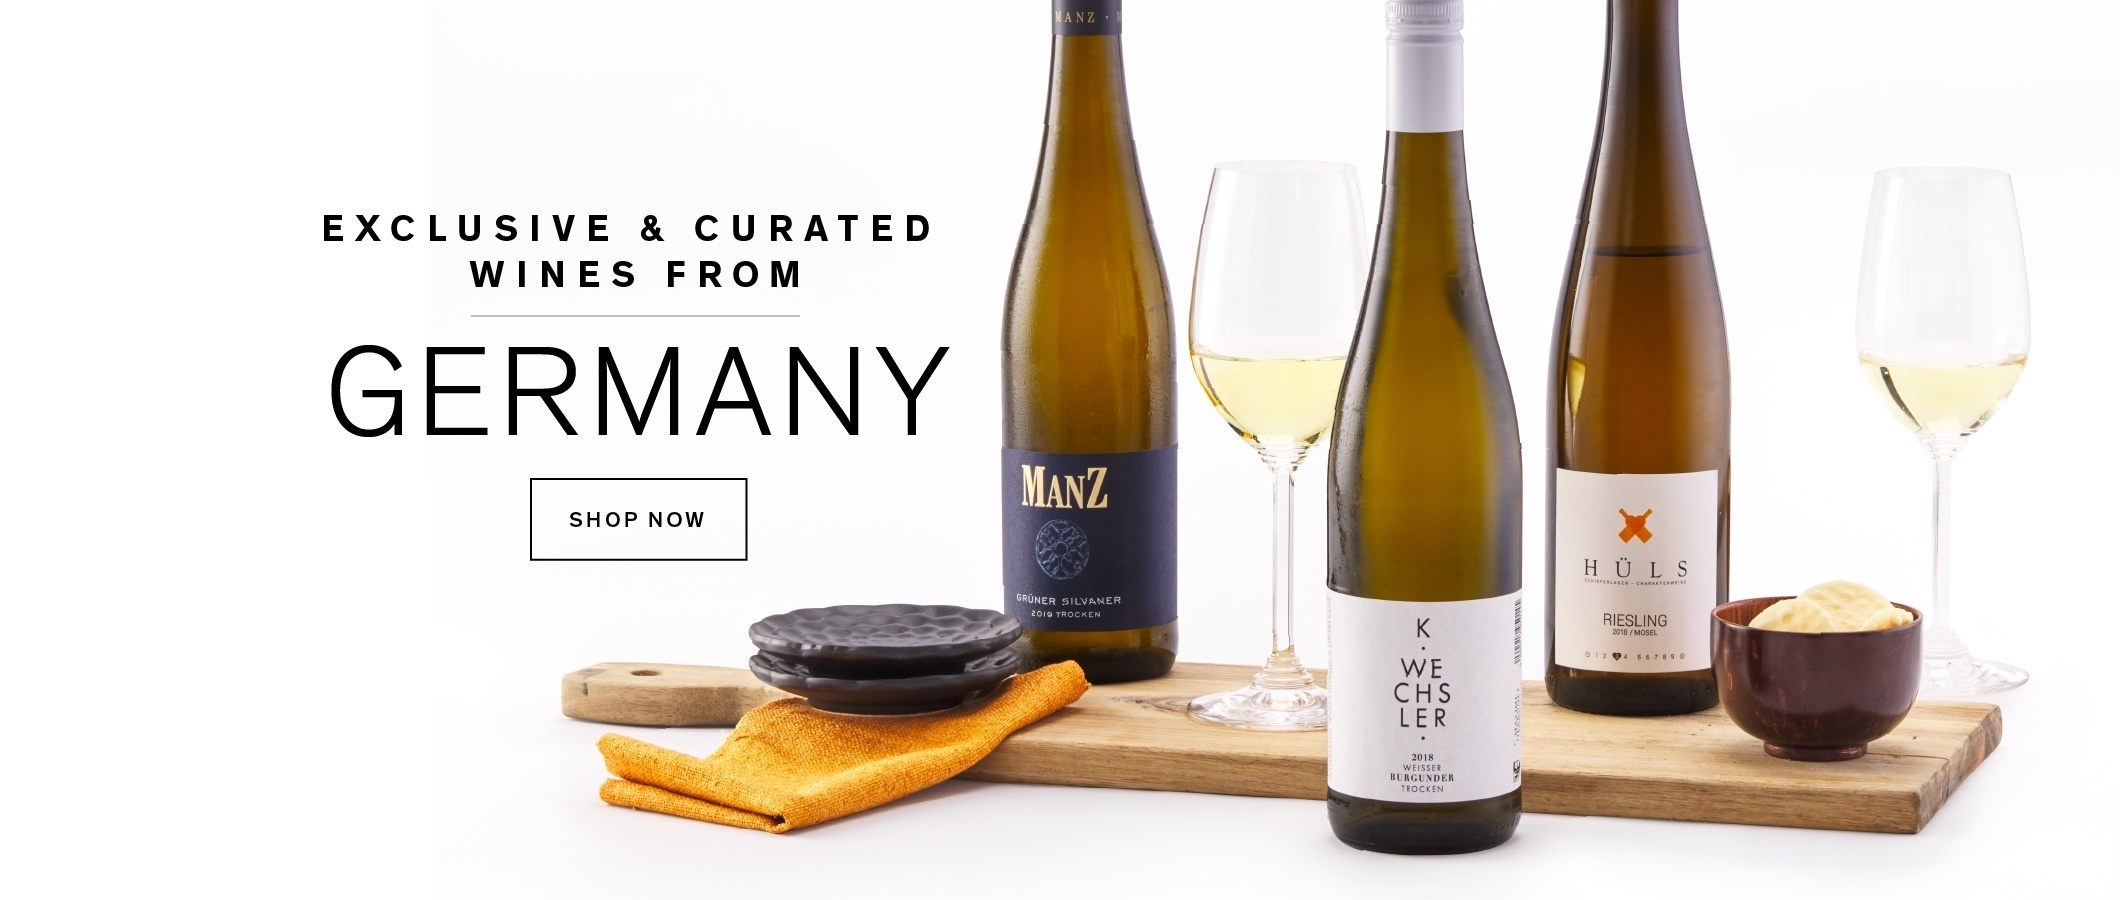 Discover our exclusive collection of wines from Germany